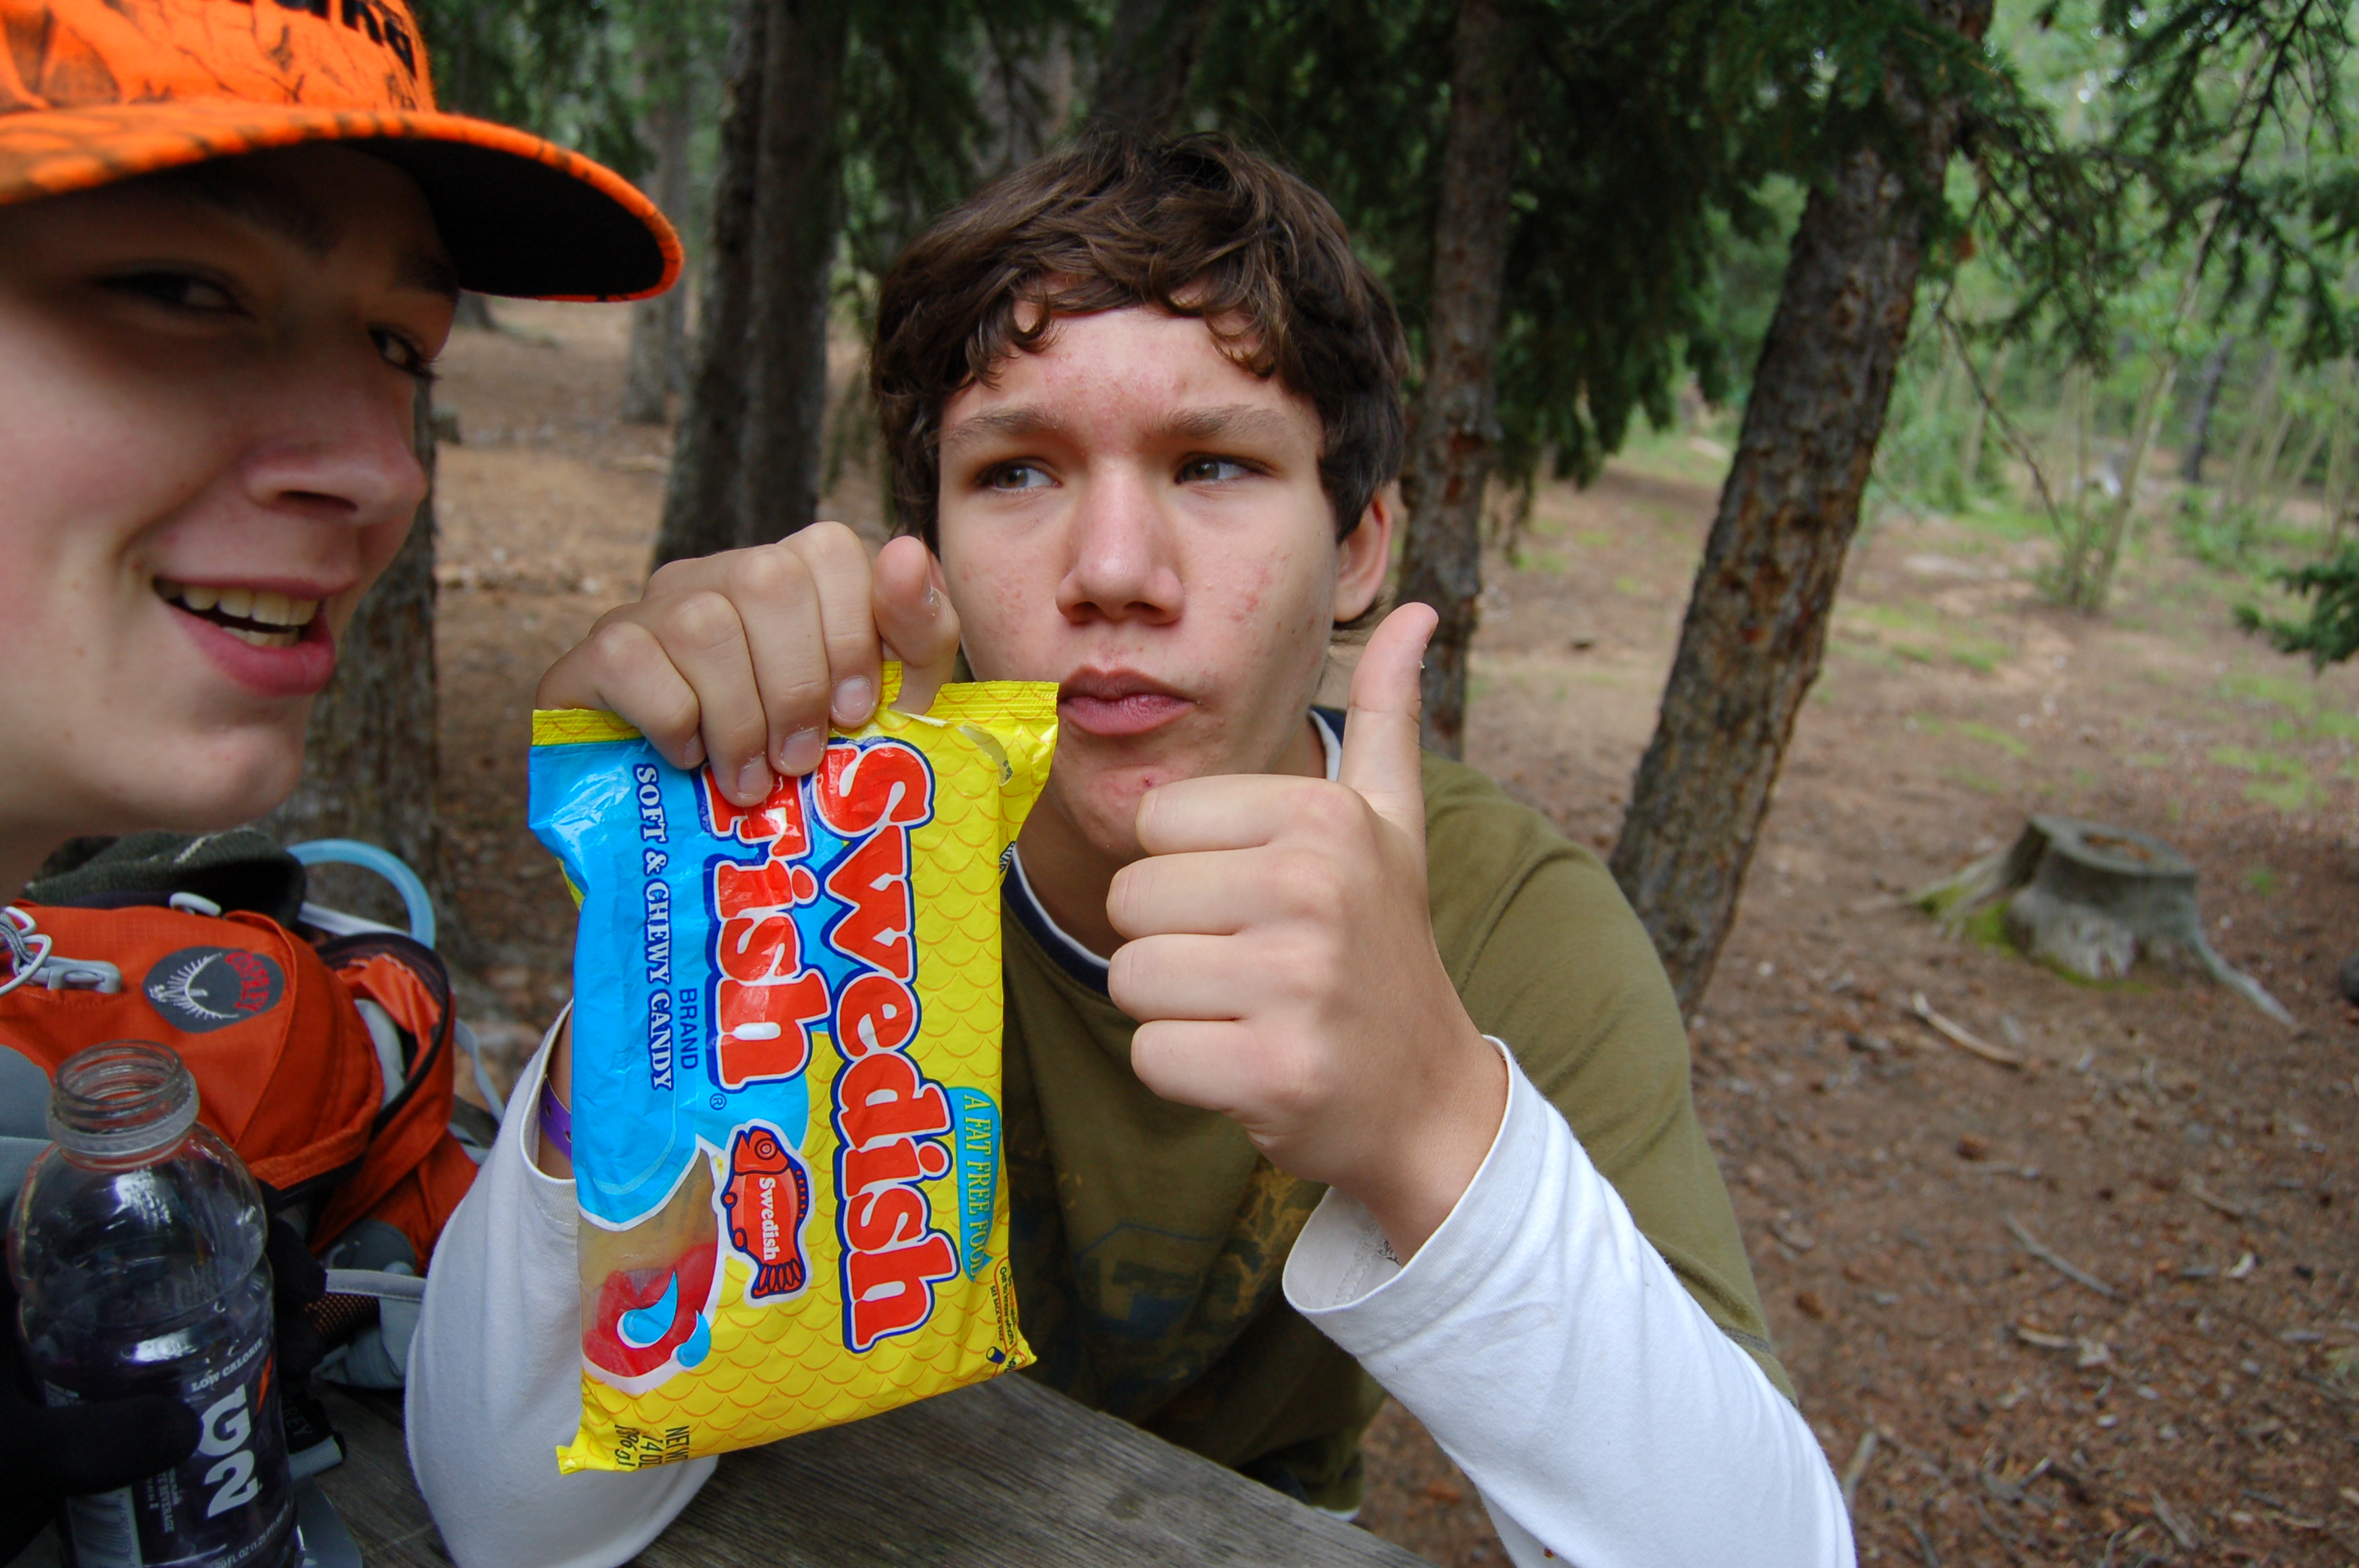 Taylor (L) and son, Andy at the Barr Campground, Pikes Peak